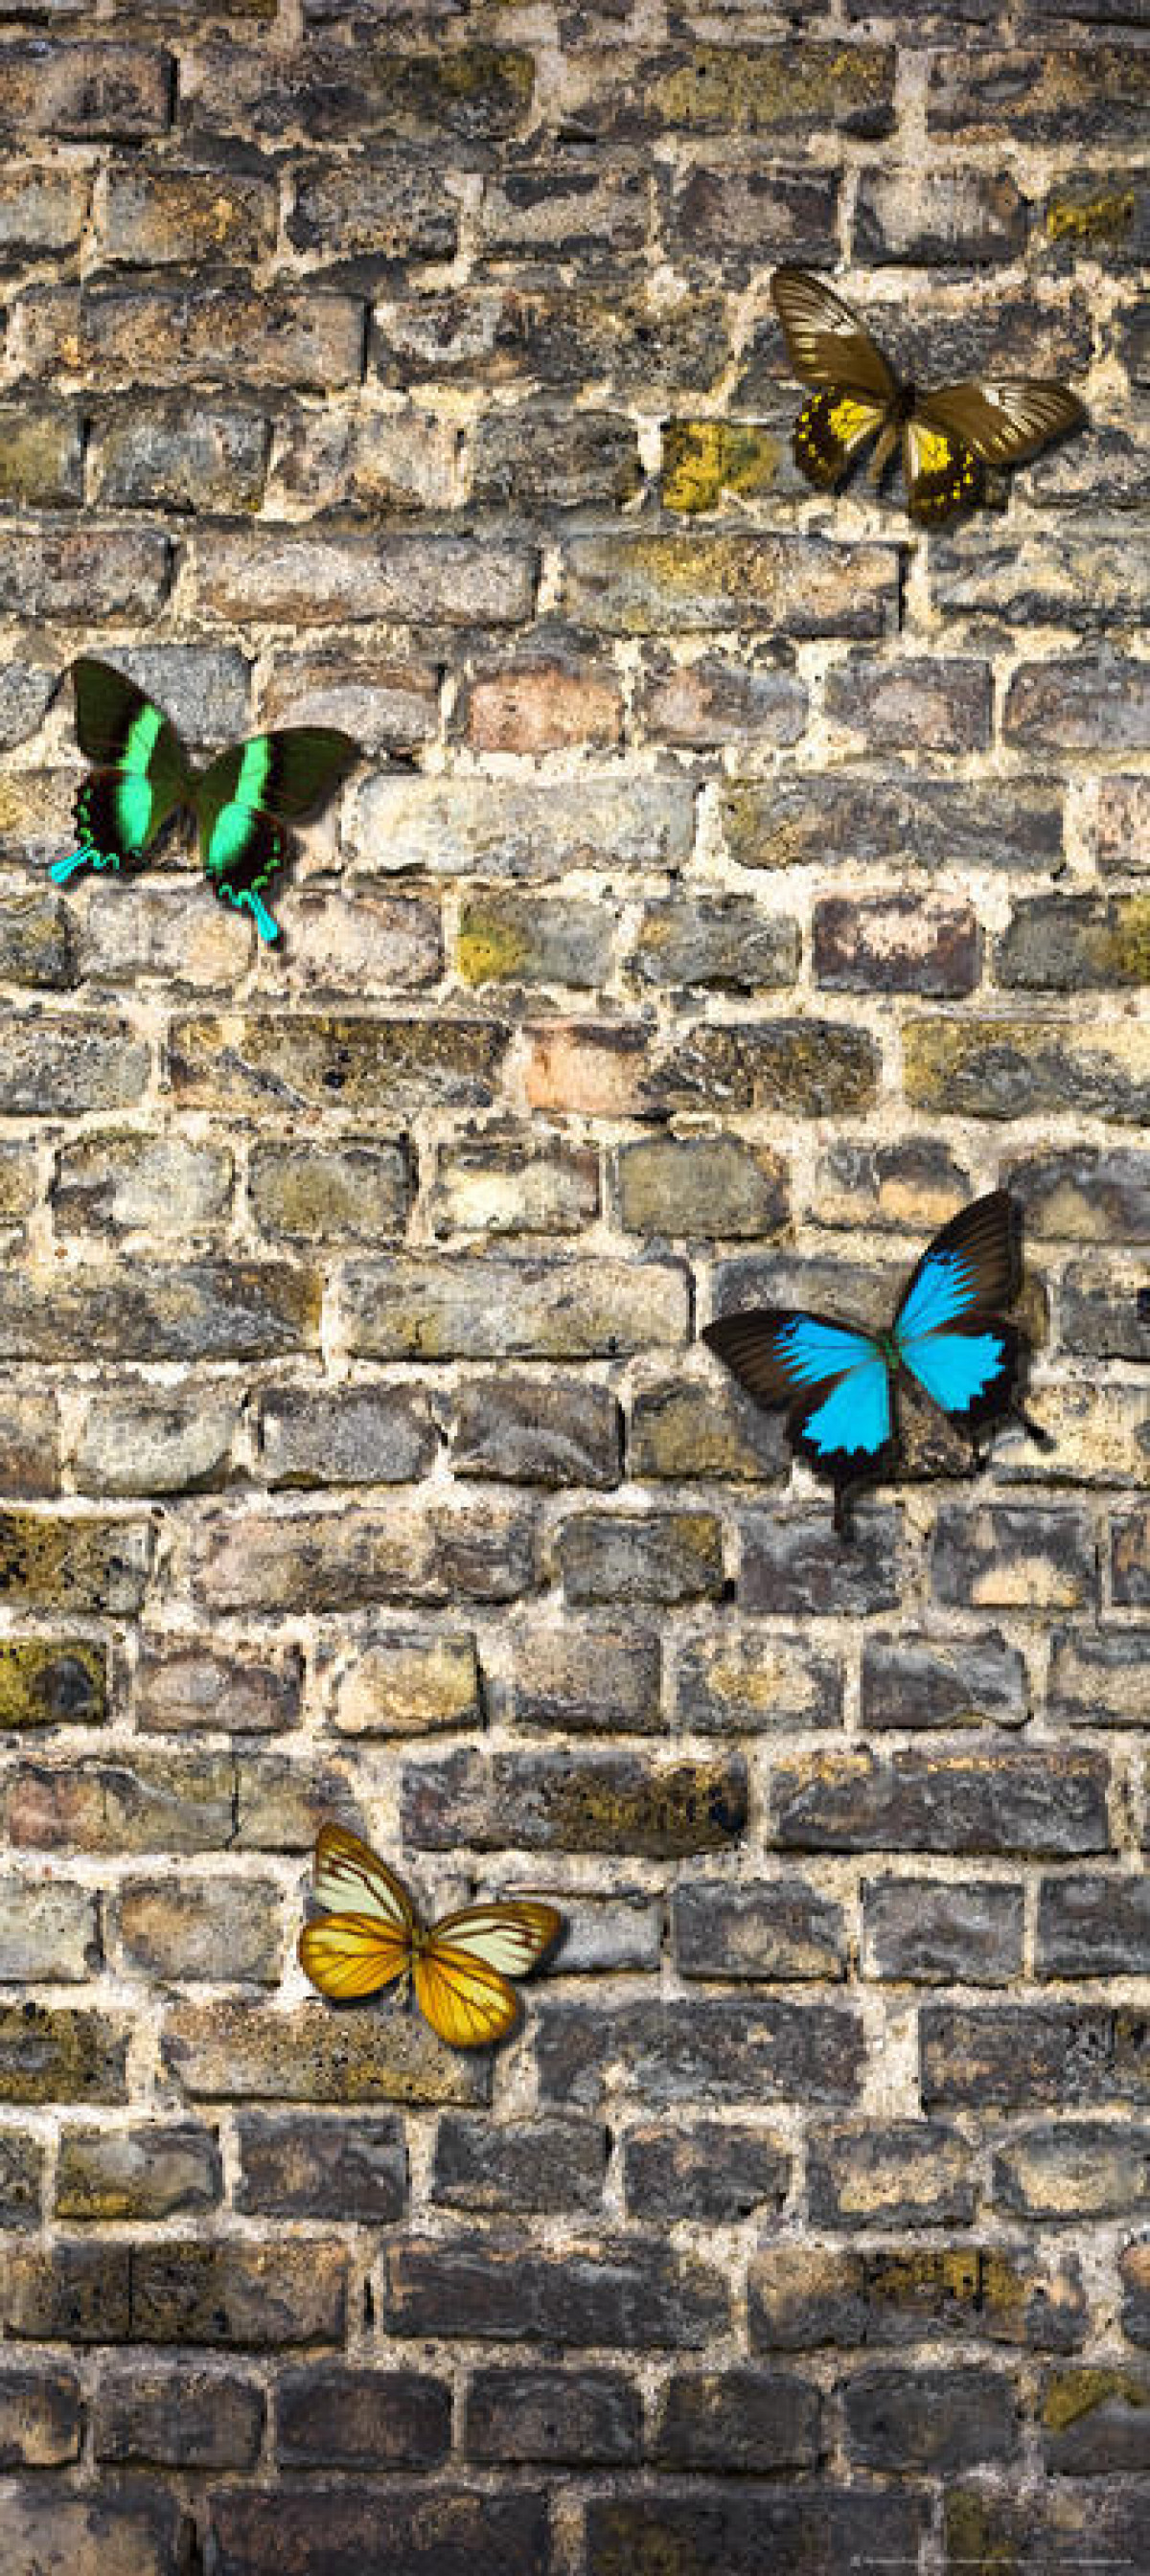 Butterfly on the wall, paper photo mural, 90x202 cm, 1 part